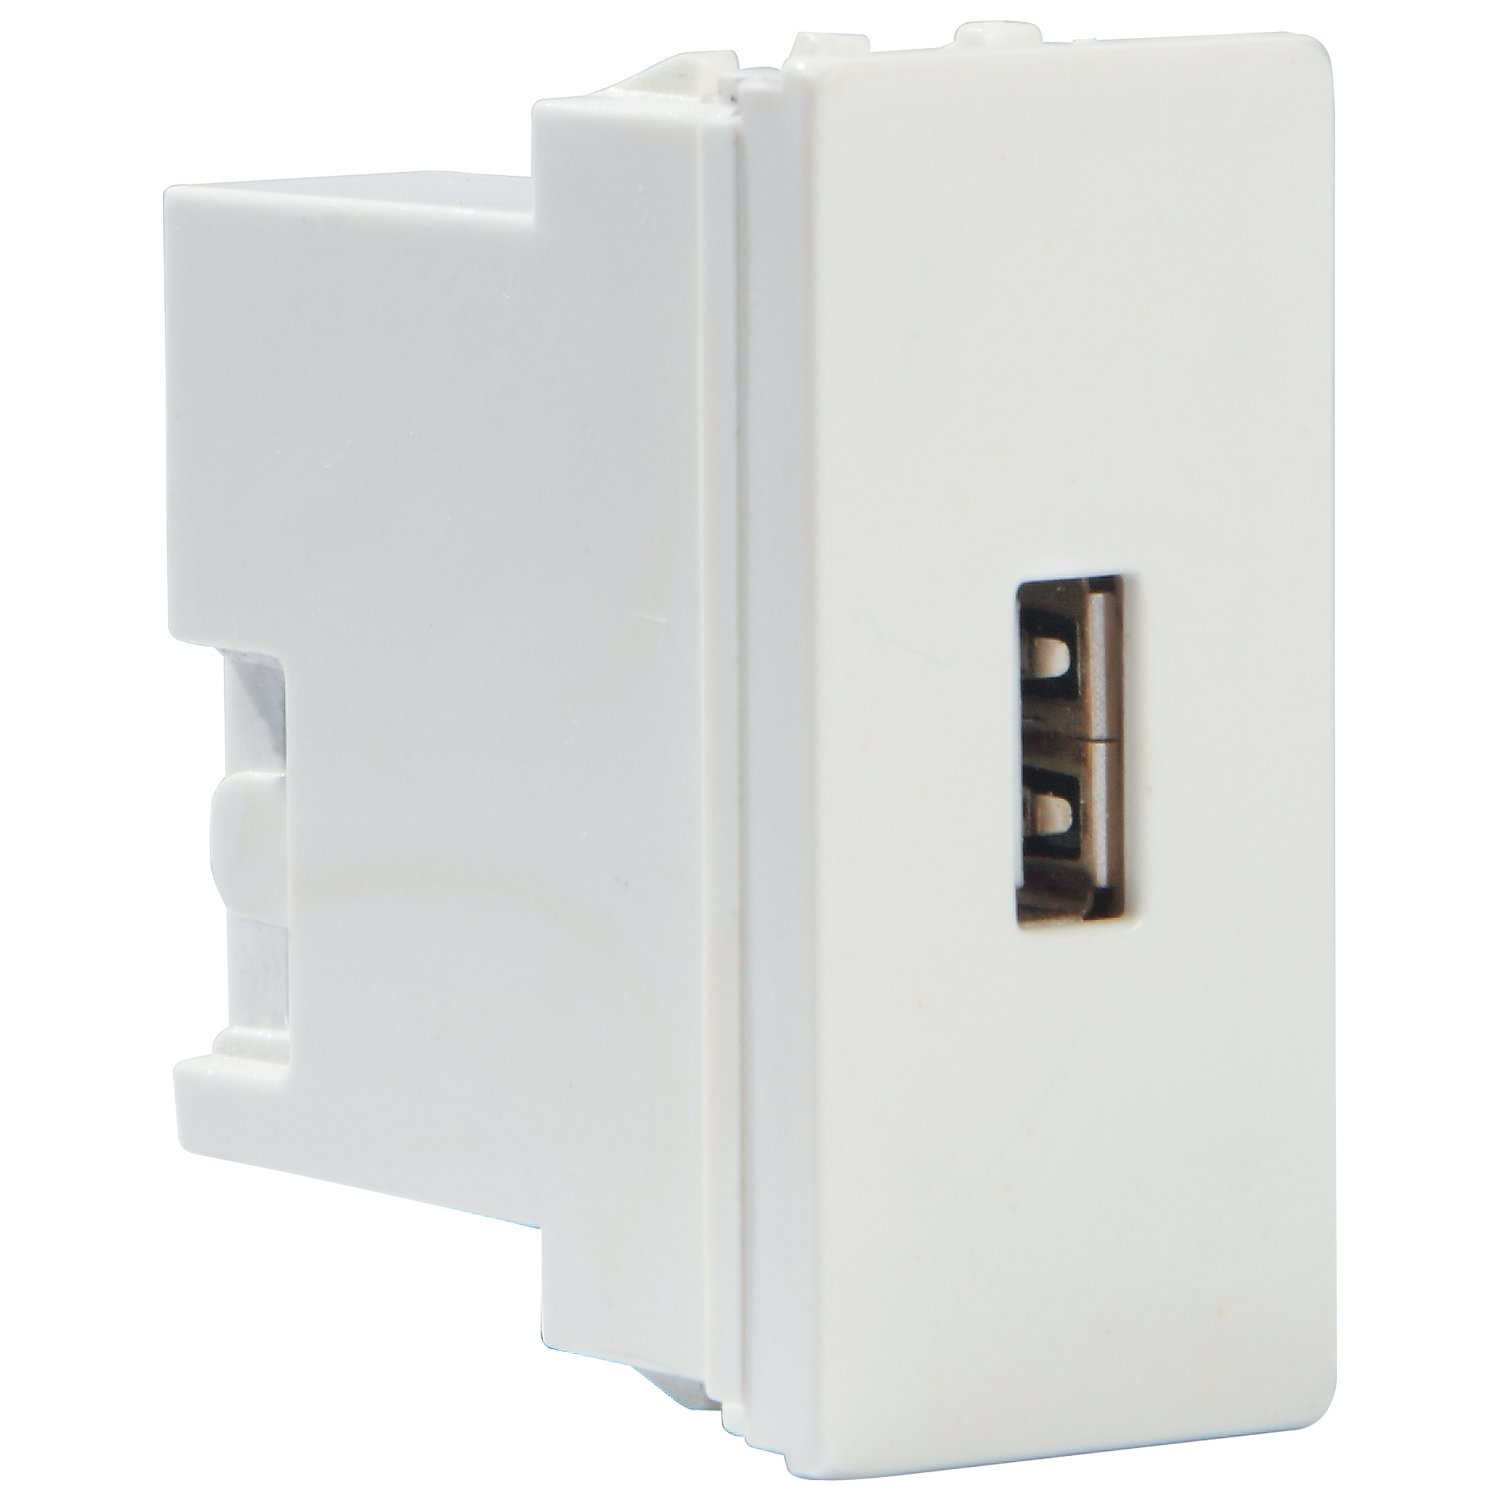 Havells Crabtree Athena USB Charger: Amazon.in: Home Improvement for Wall Switches And Sockets  177nar